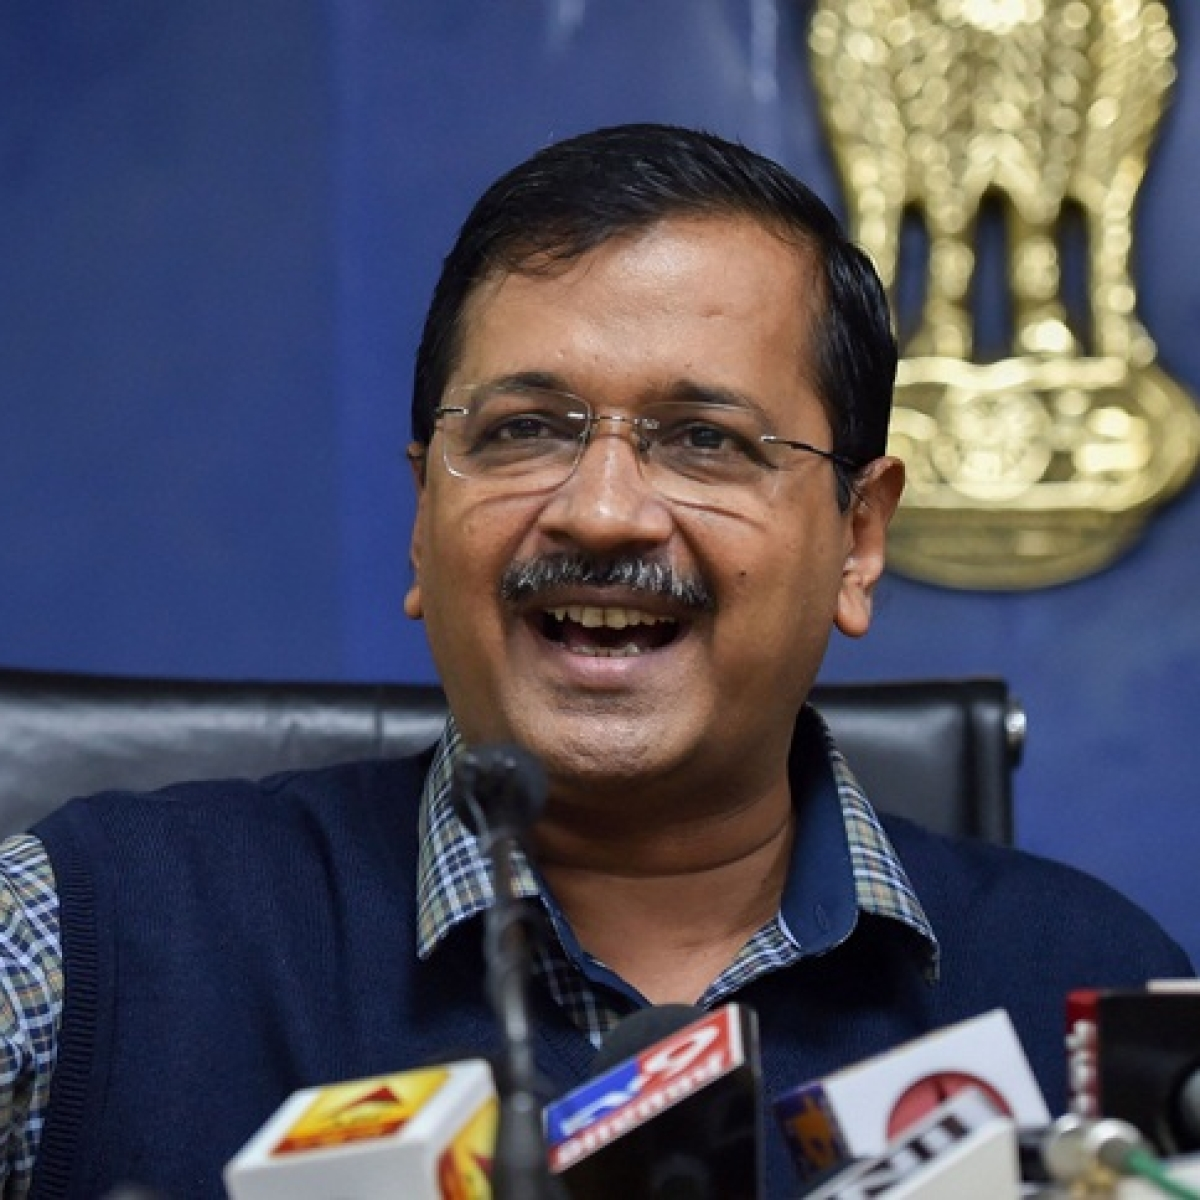 Prefer to provide free rides to women, instead of buying Rs 191 crore-plane: Arvind Kejriwal takes jibe at Gujarat CM